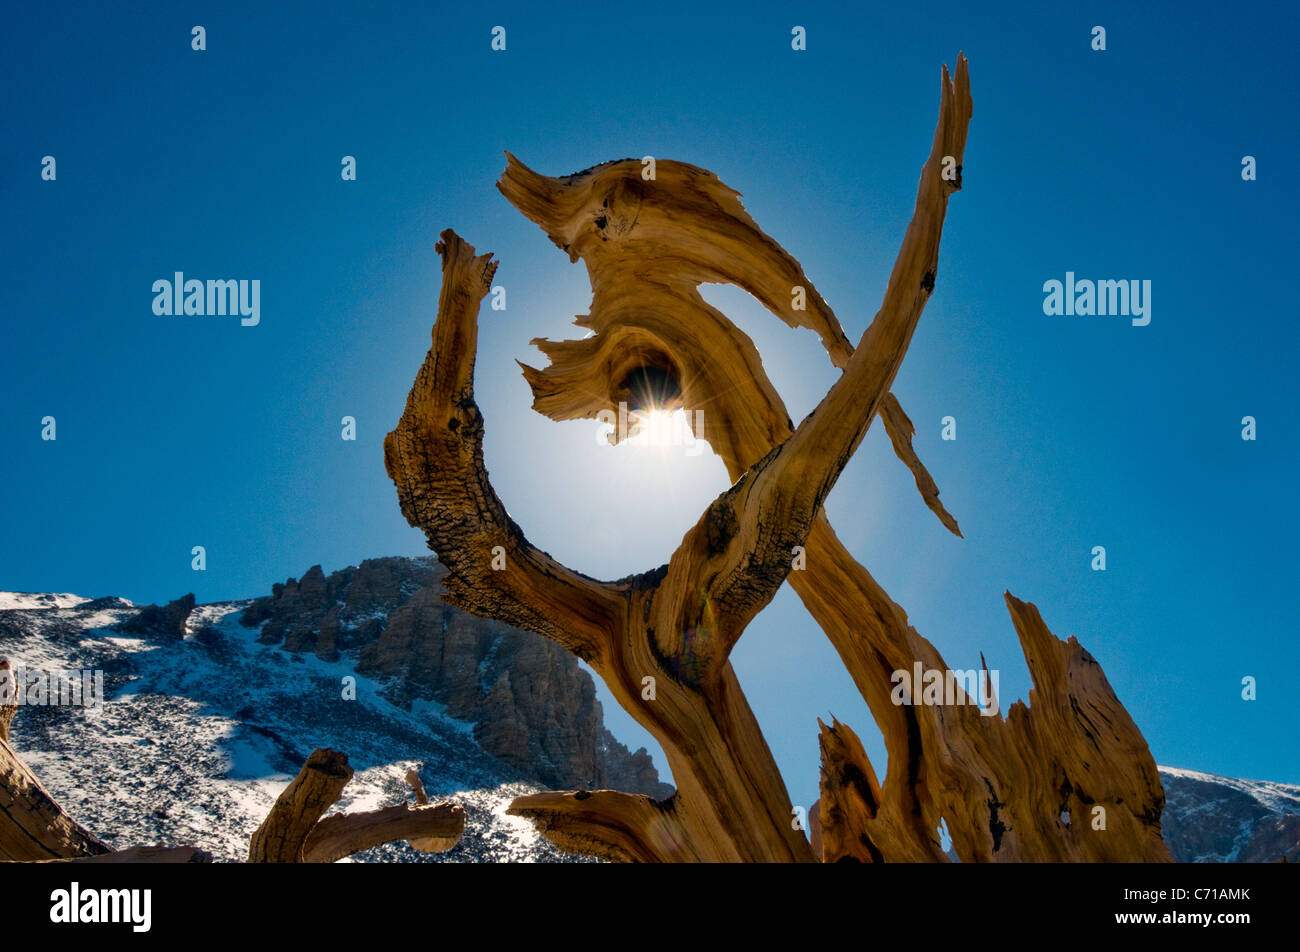 An odd shaped section of a live bristlecone pine tree in Great Basin National Park, NV. - Stock Image